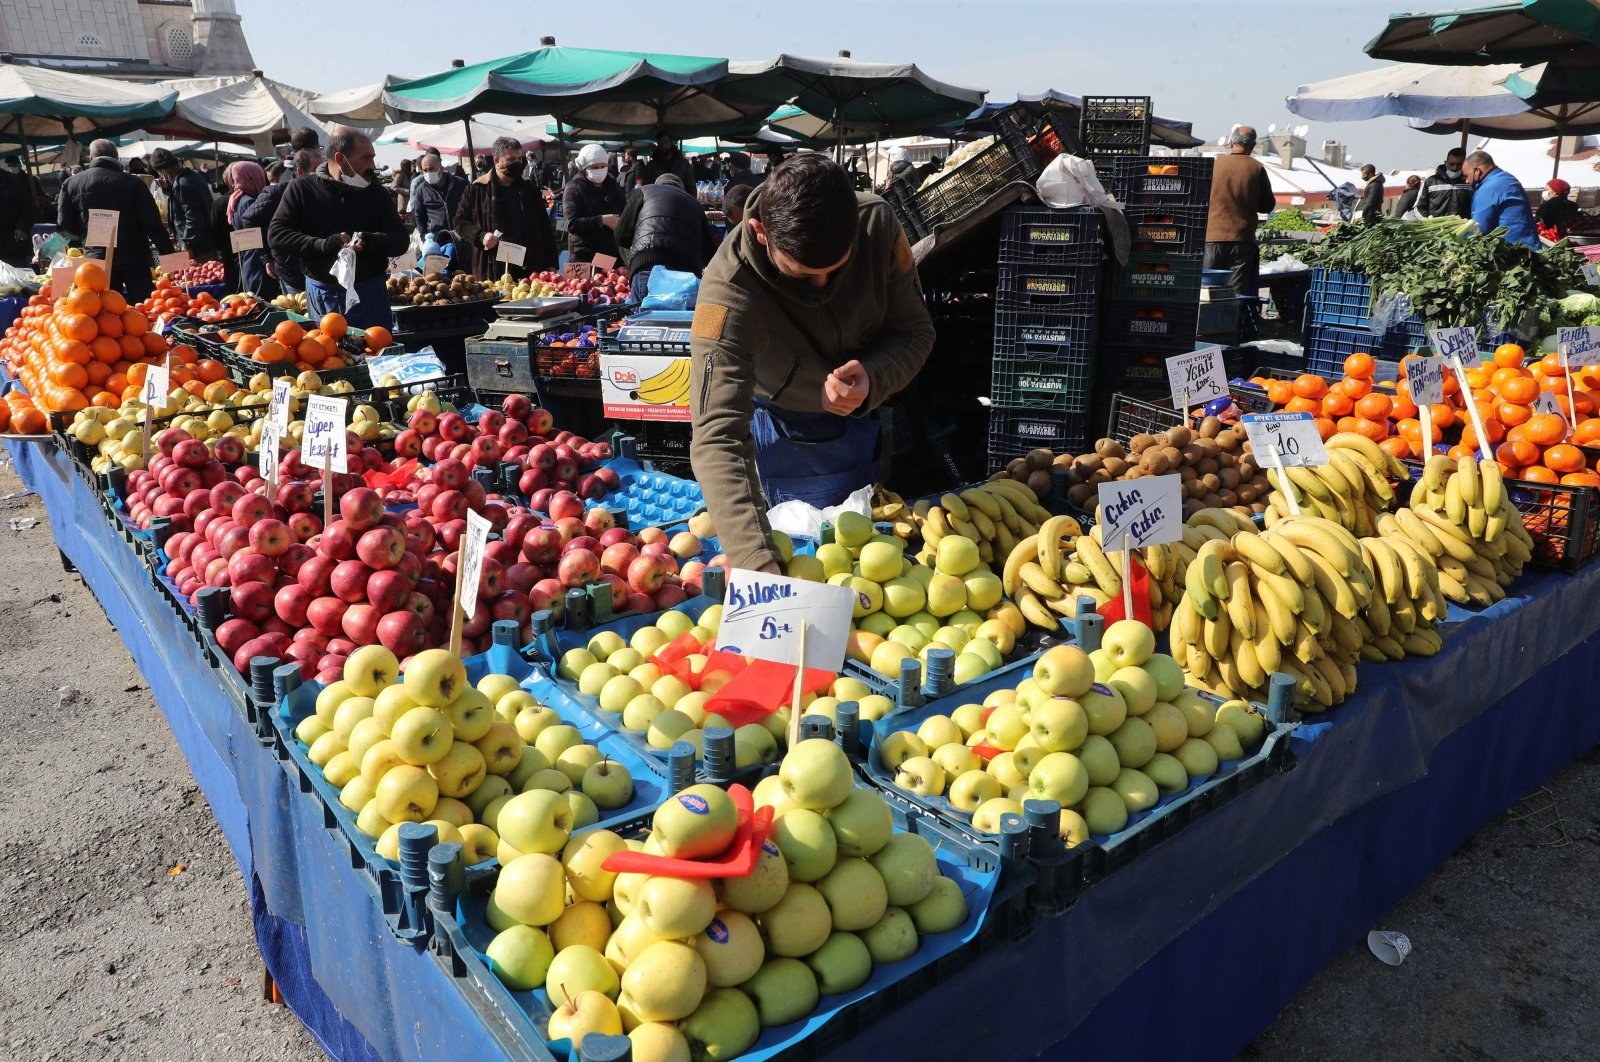 A vendor wearing a protective mask arranges his stall at a local market, amid the COVID-19 outbreak in Ankara, Turkey, Feb. 22, 2021. (AFP Photo)